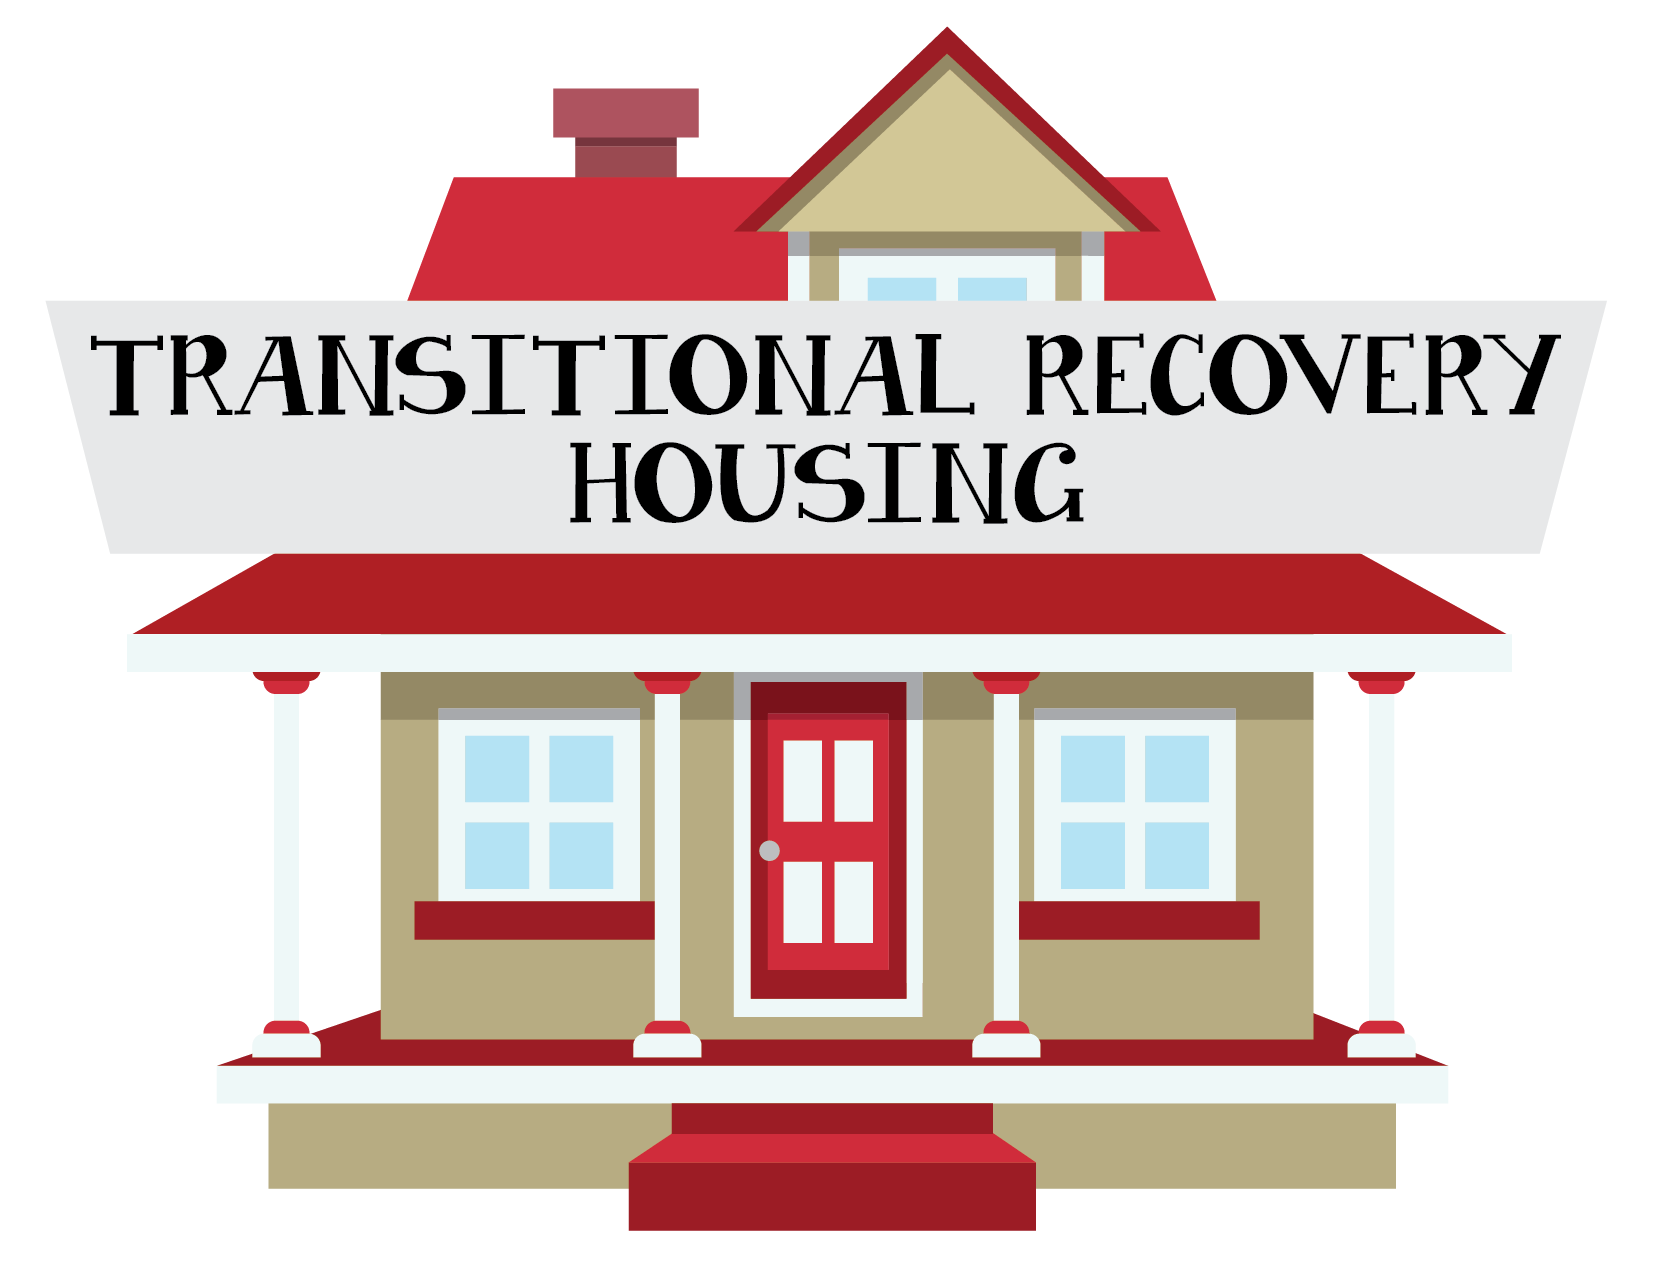 Fundraiser clipart lend a hand. Transitional recovery housing services